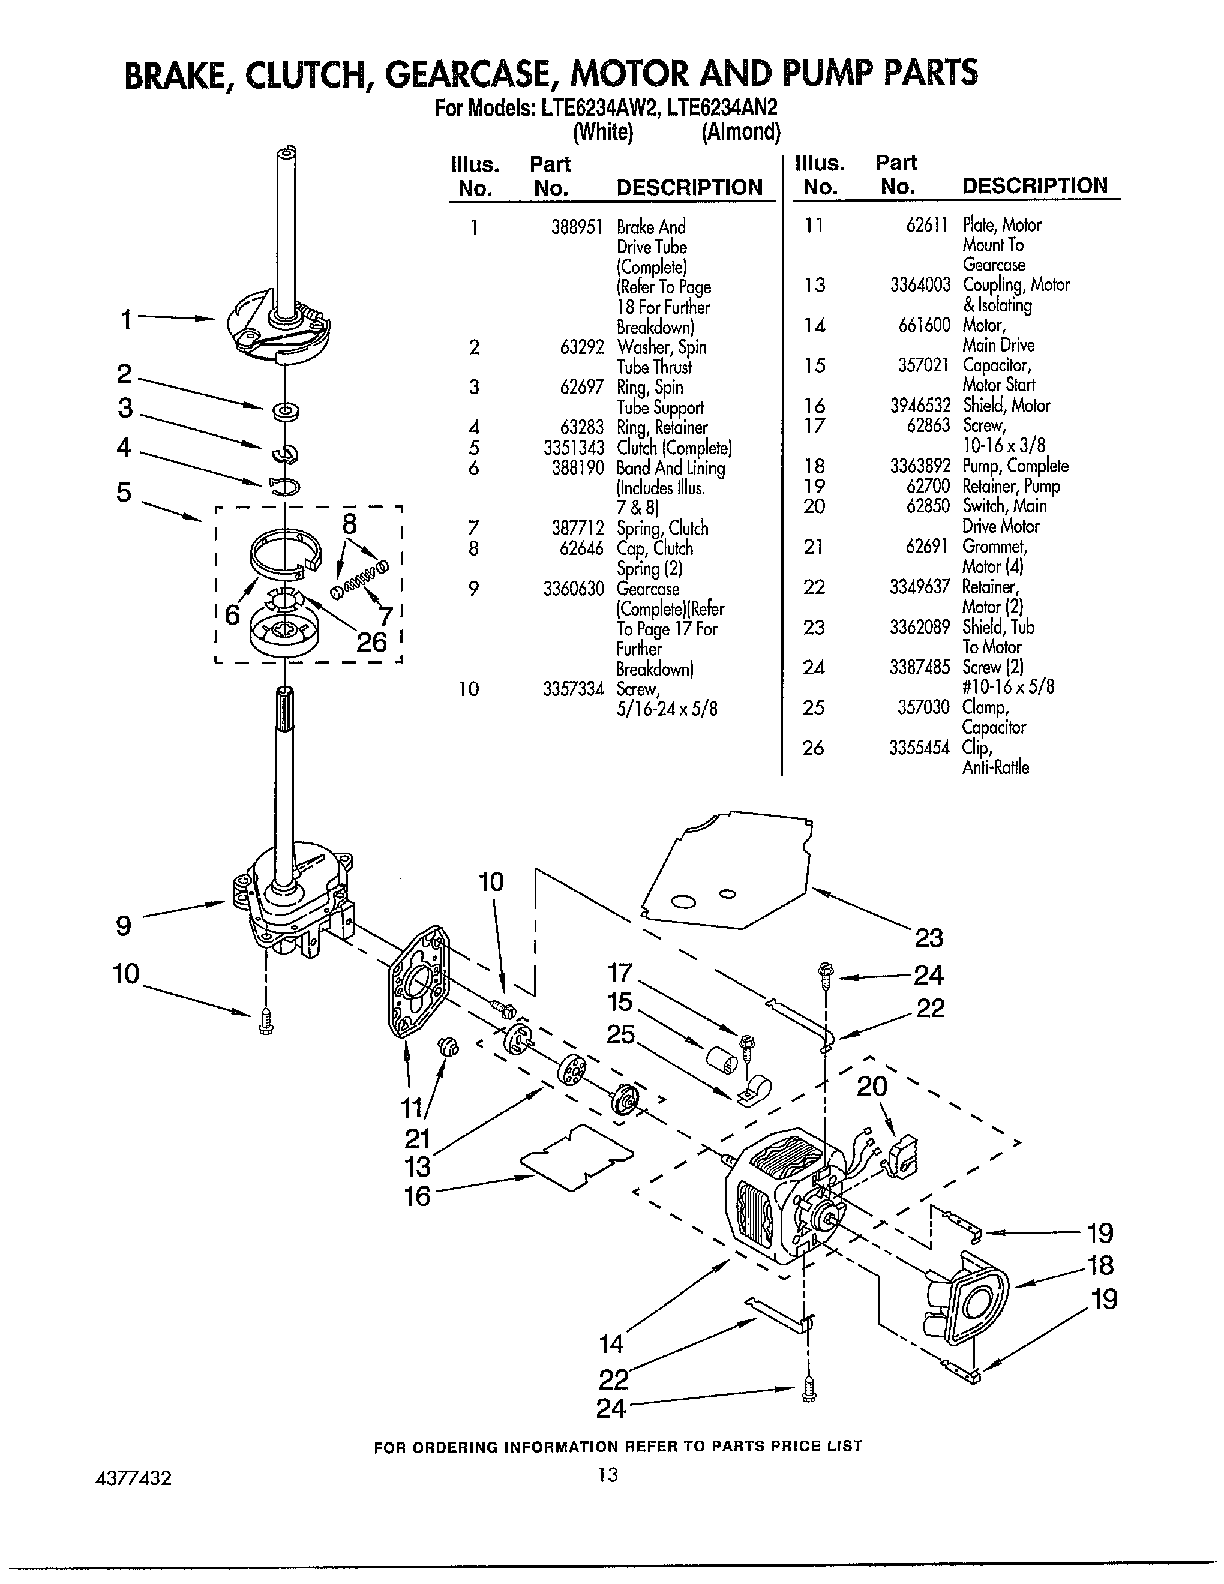 hight resolution of whirlpool lte6243an2 brake clutch and motor parts diagram